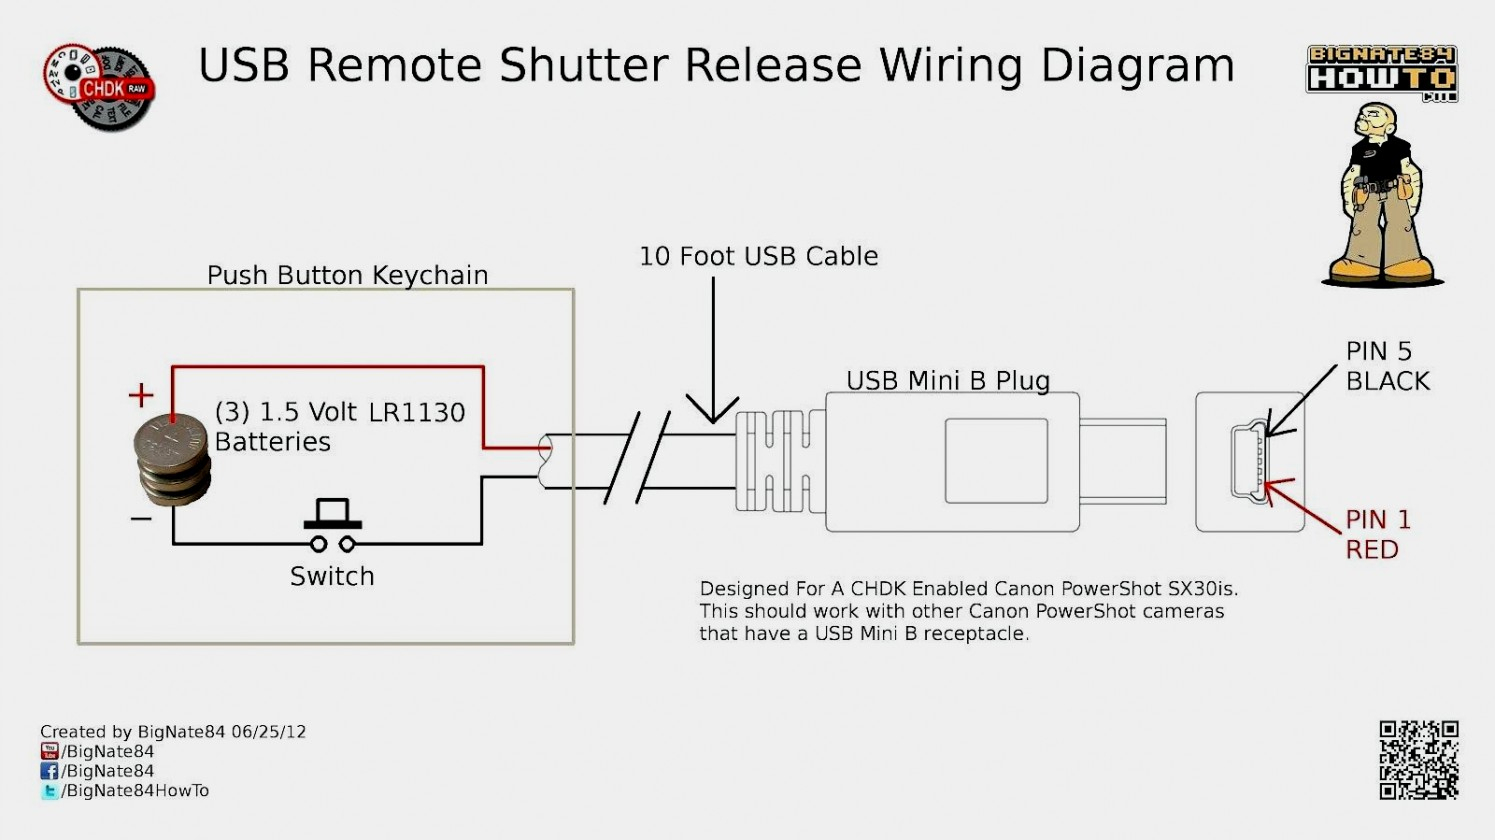 Usb To Headphone Jack Adapter Wiring Diagram | Wiring Diagram - Usb Extension Cable Wiring Diagram